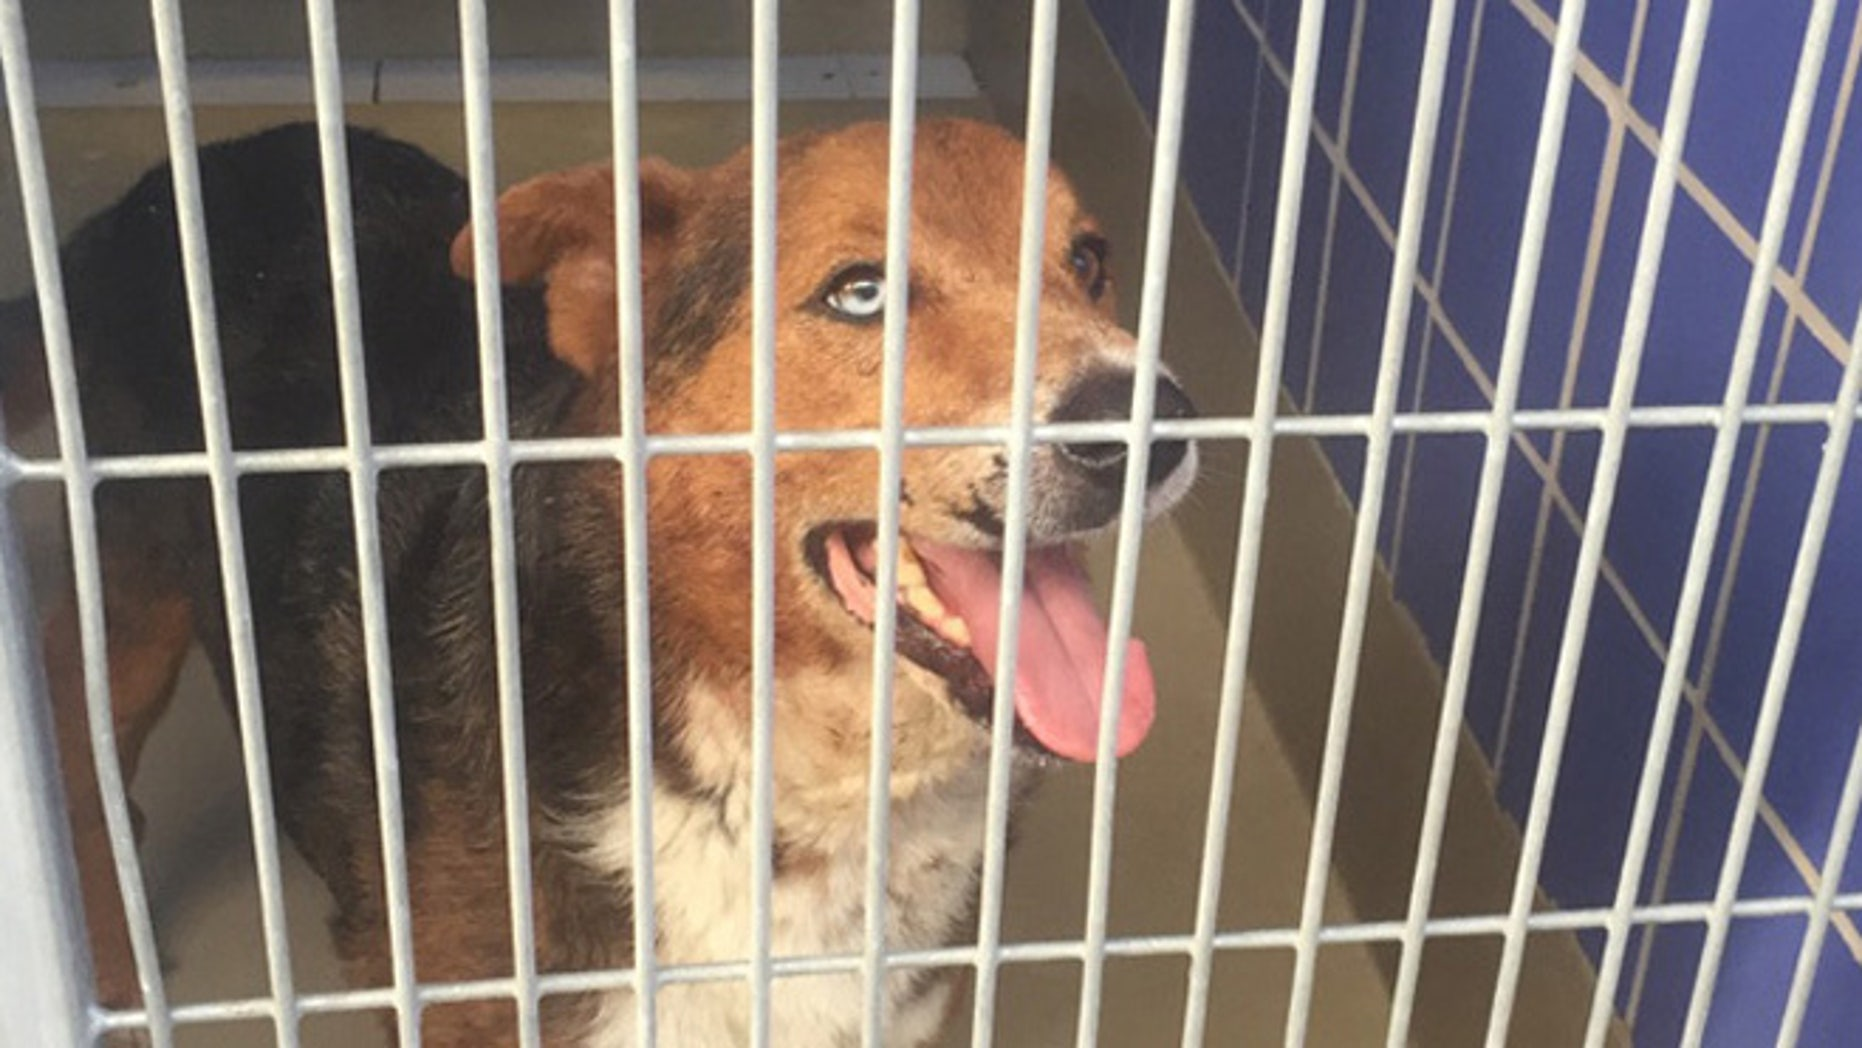 One of the dogs seized after an attack on a woman at Texas home. (Austin Animal Protection)